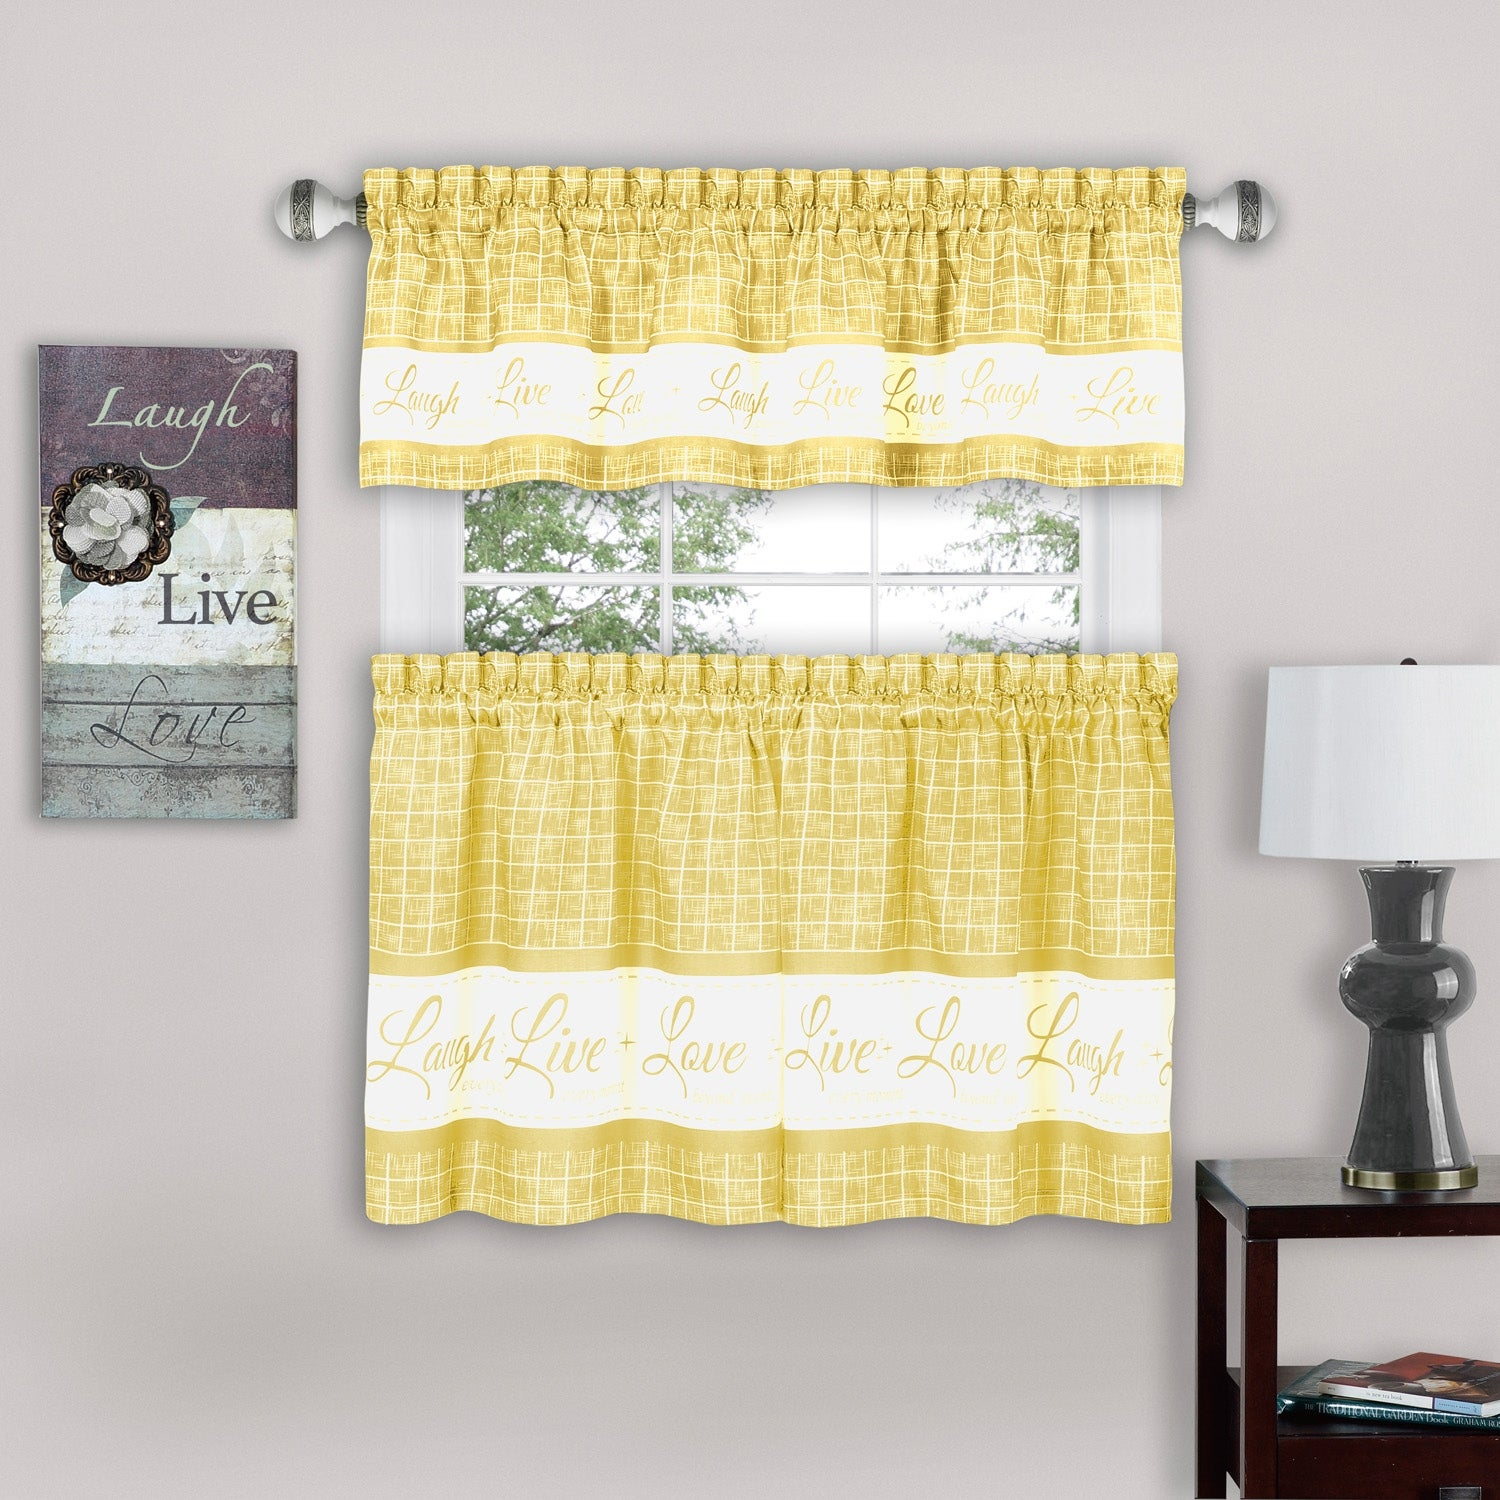 Live Laugh Love 3 Piece Kitchen Curtain Set Tiers 58x36 Swag 58x14 Inches Overstock 30385914 Blue